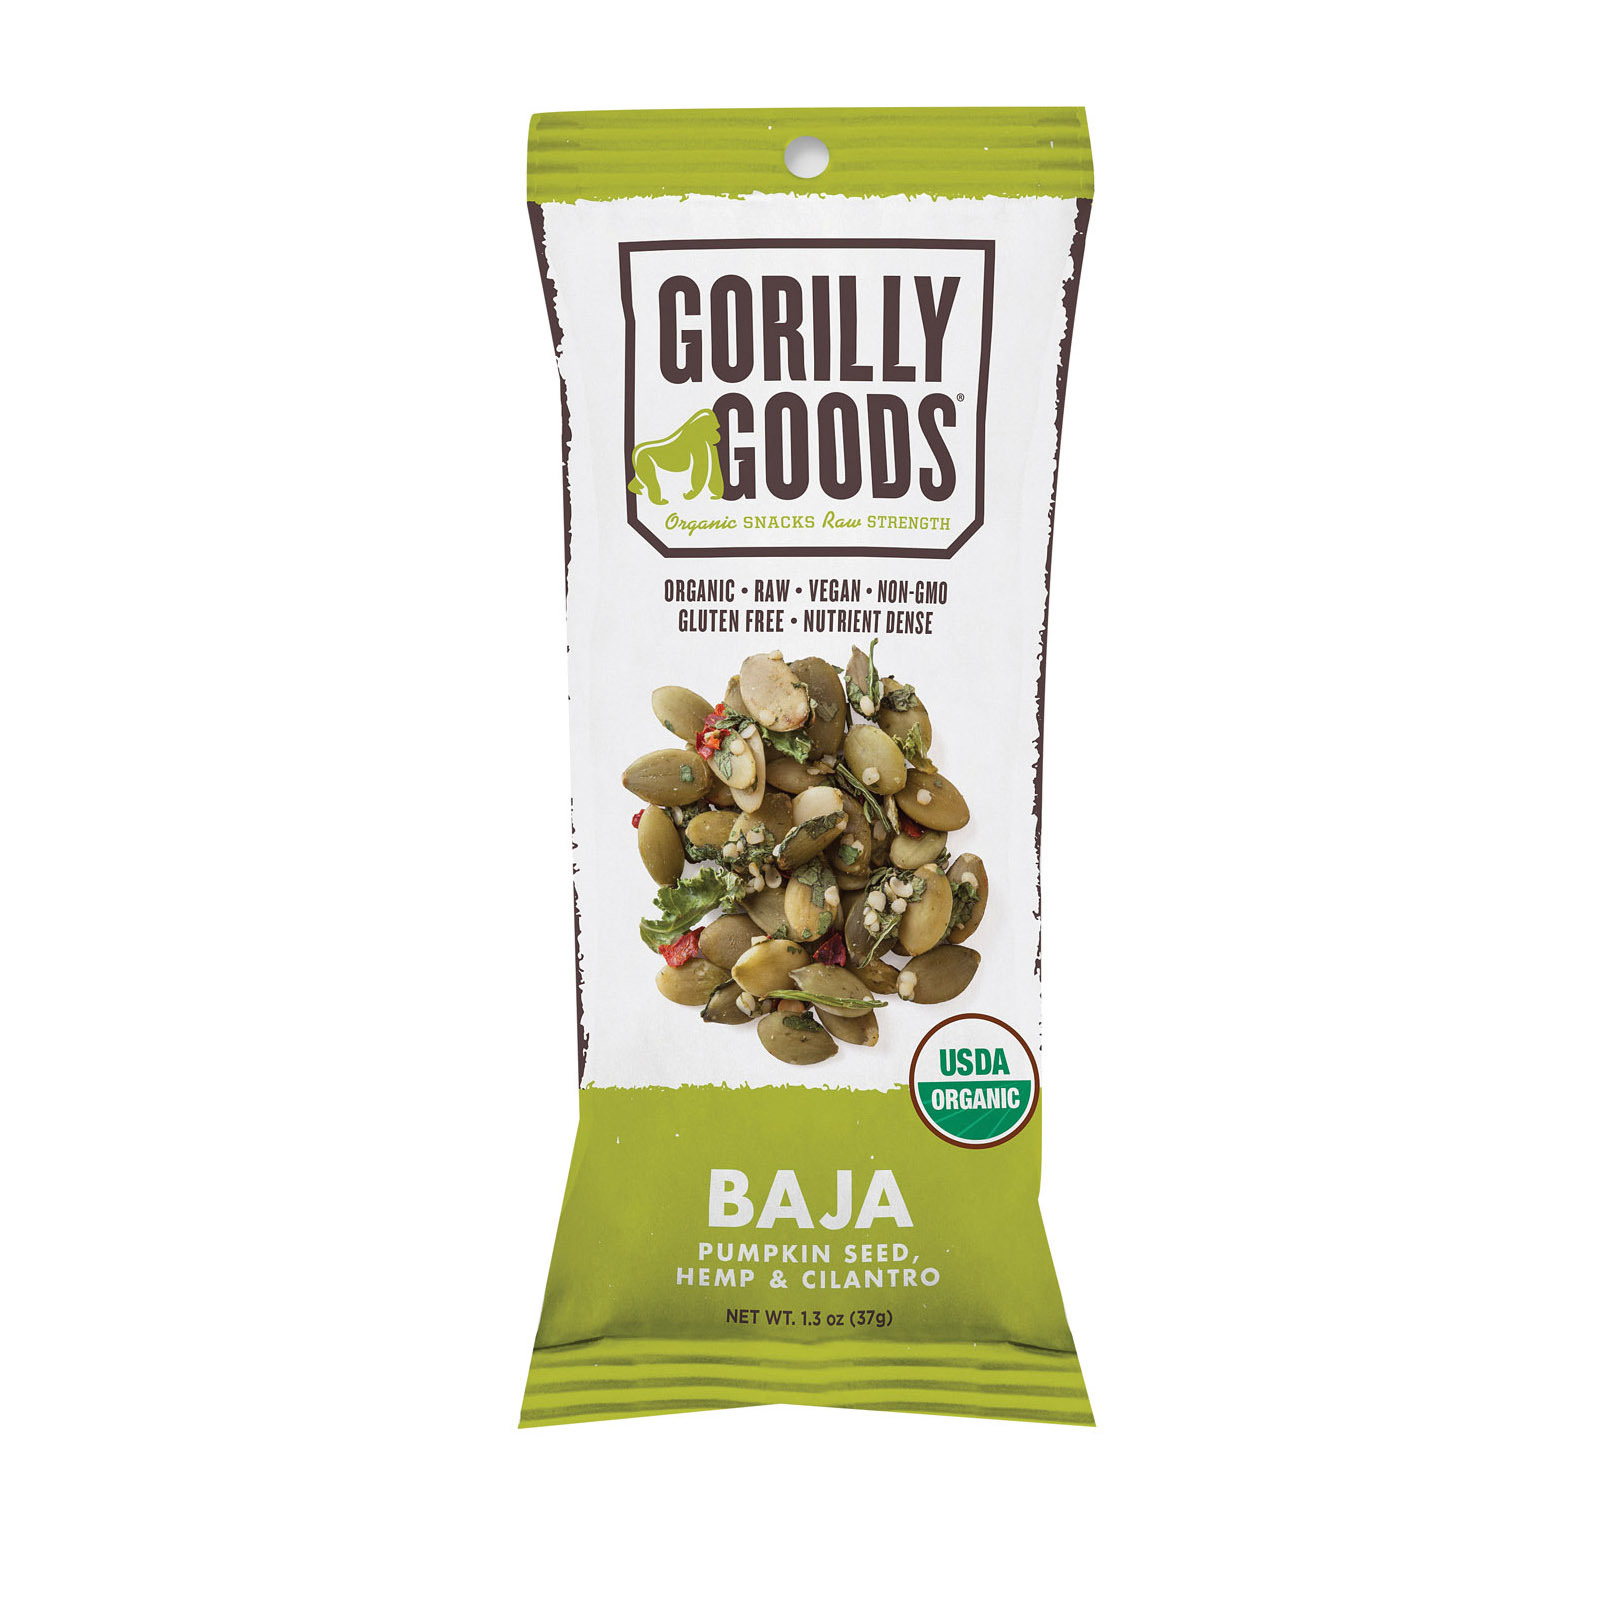 Gorilly Goods Baja - Organic - Stickpack - Case of 12 - 1.30 oz